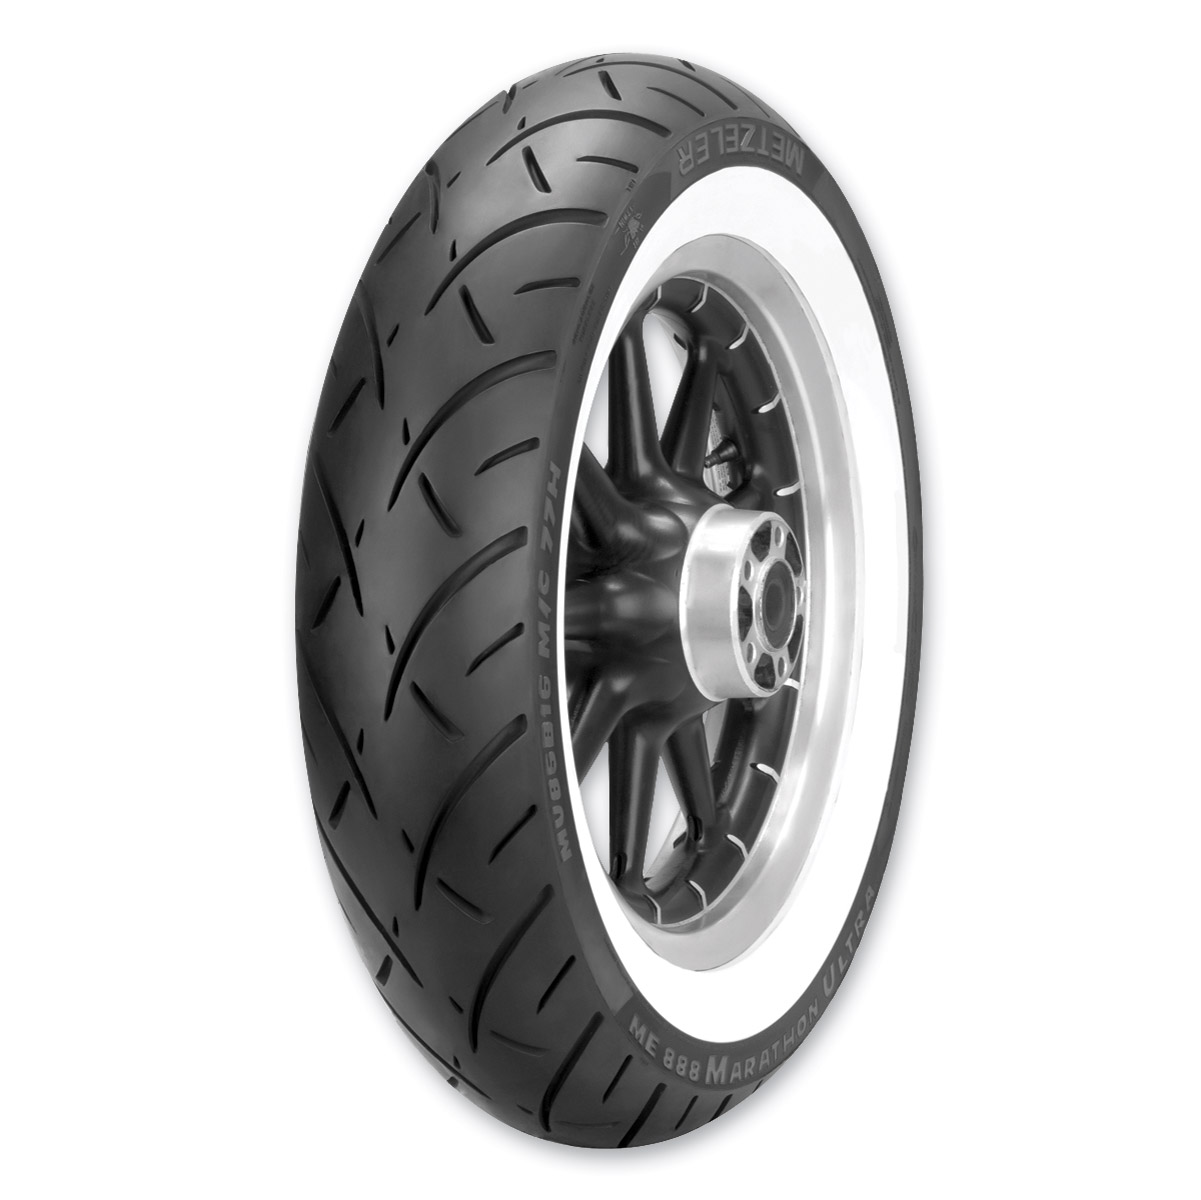 Metzeler ME888 150/80B16 Wide Whitewall Rear Tire